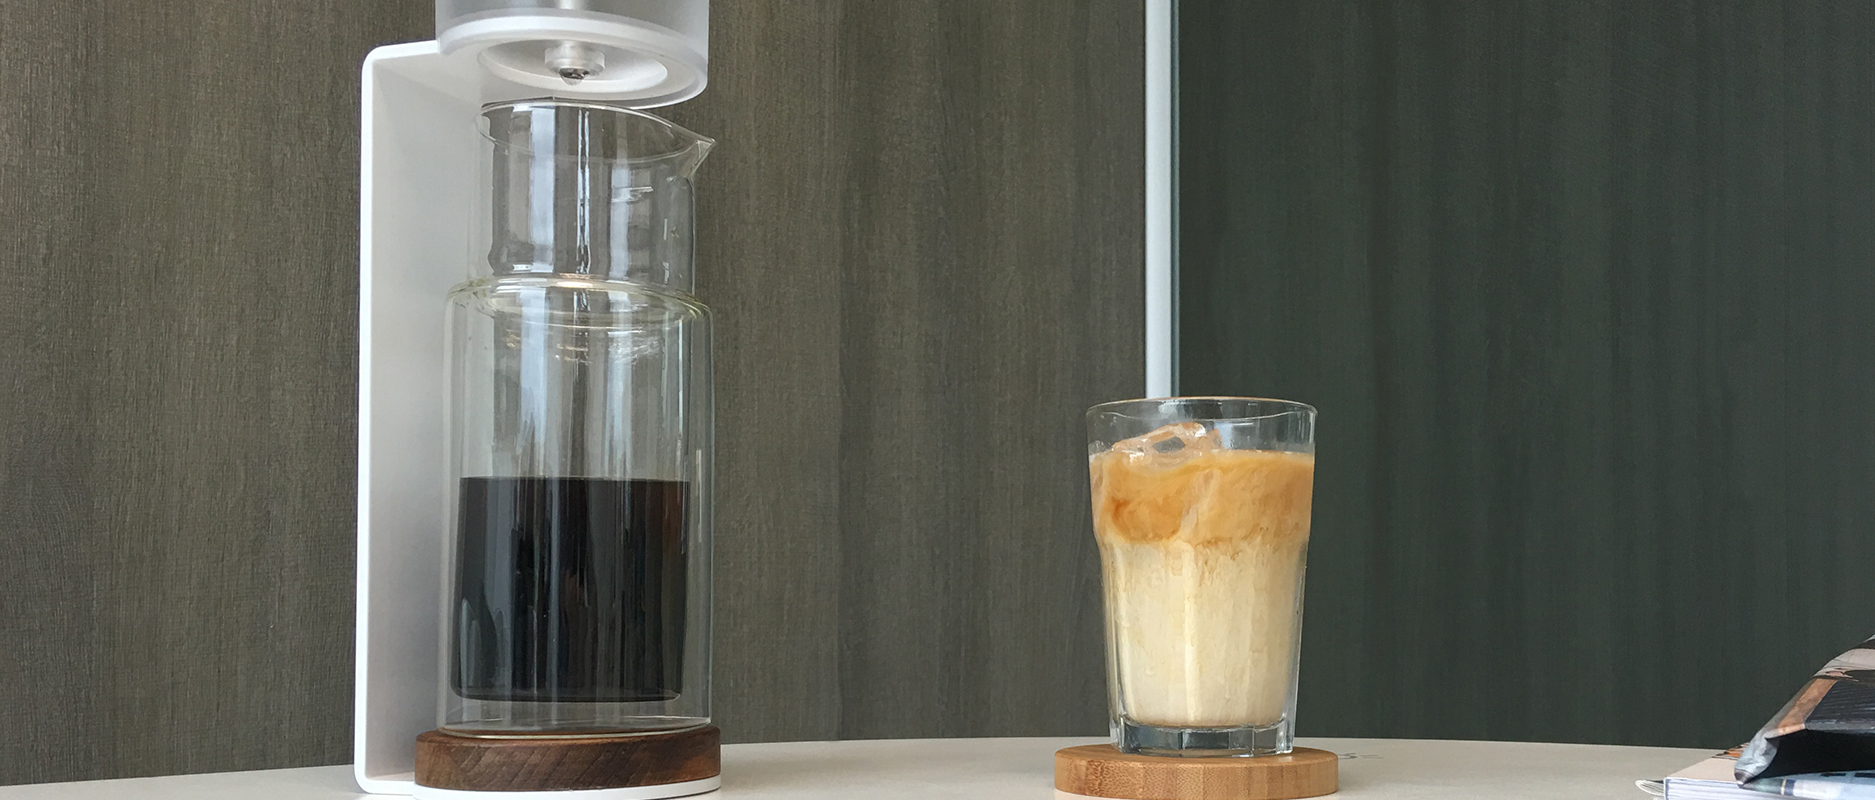 COLD BREW CON LATTE